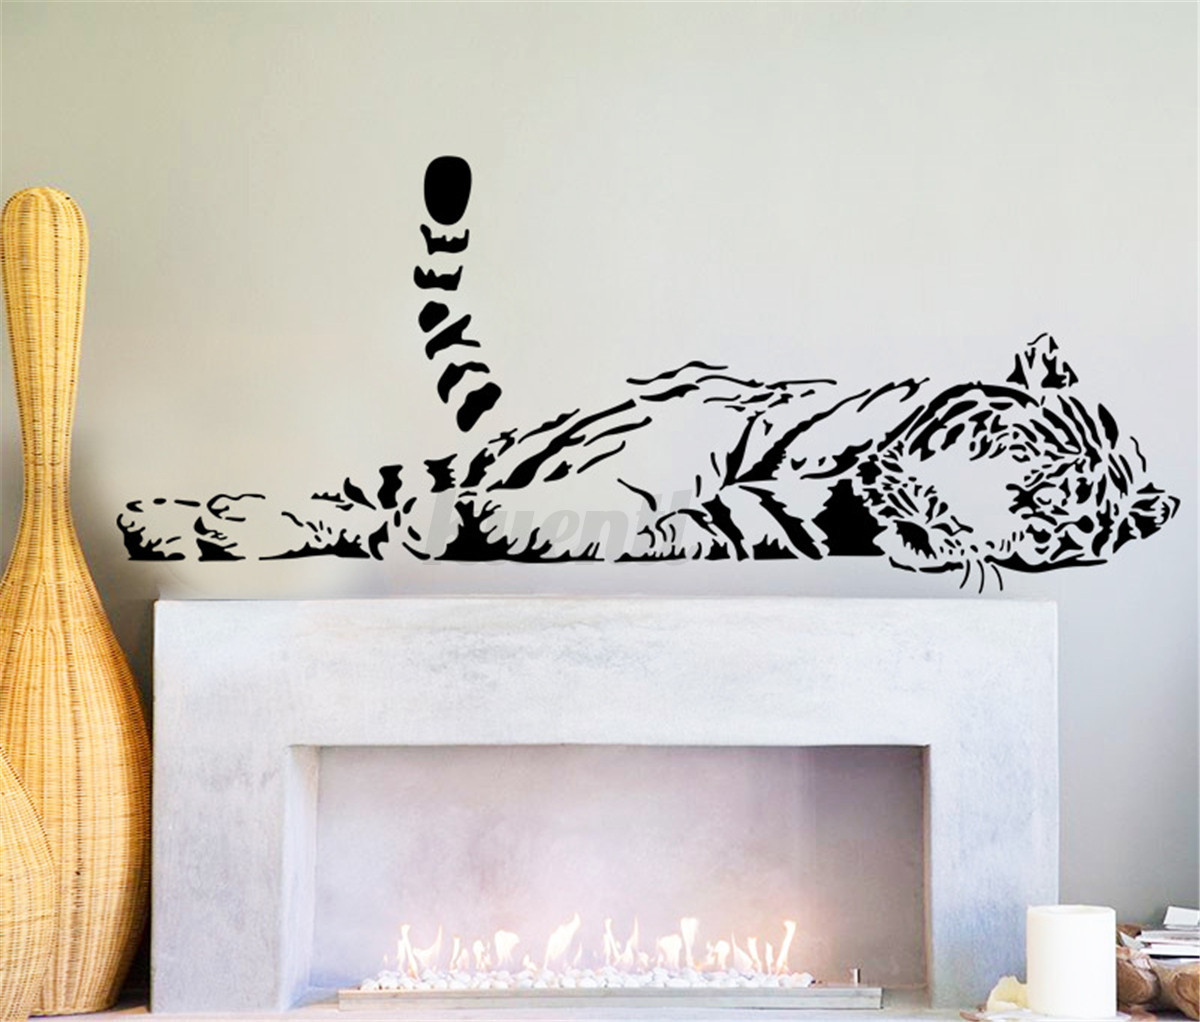 Removible Tigre Pared Pegatinas Vinilo Etiqueta Decal